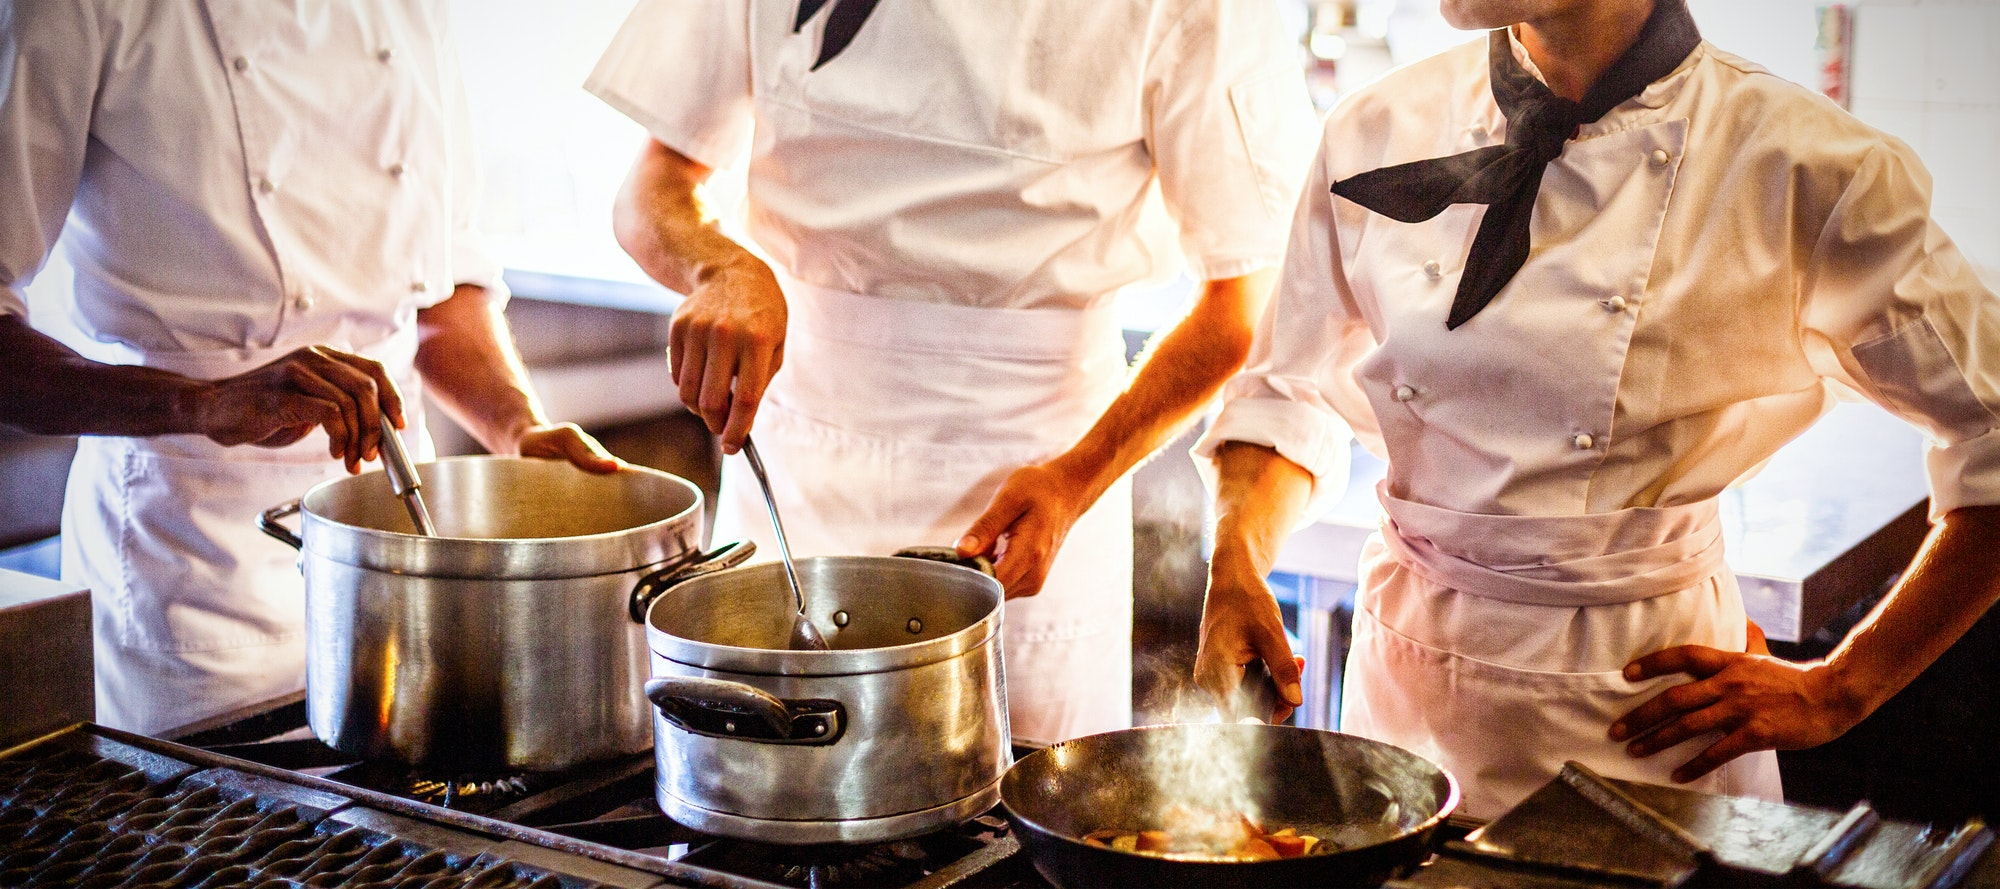 Cook Or Chef? Get Victorian State Nomination Via The Workforce Skills Pathway!